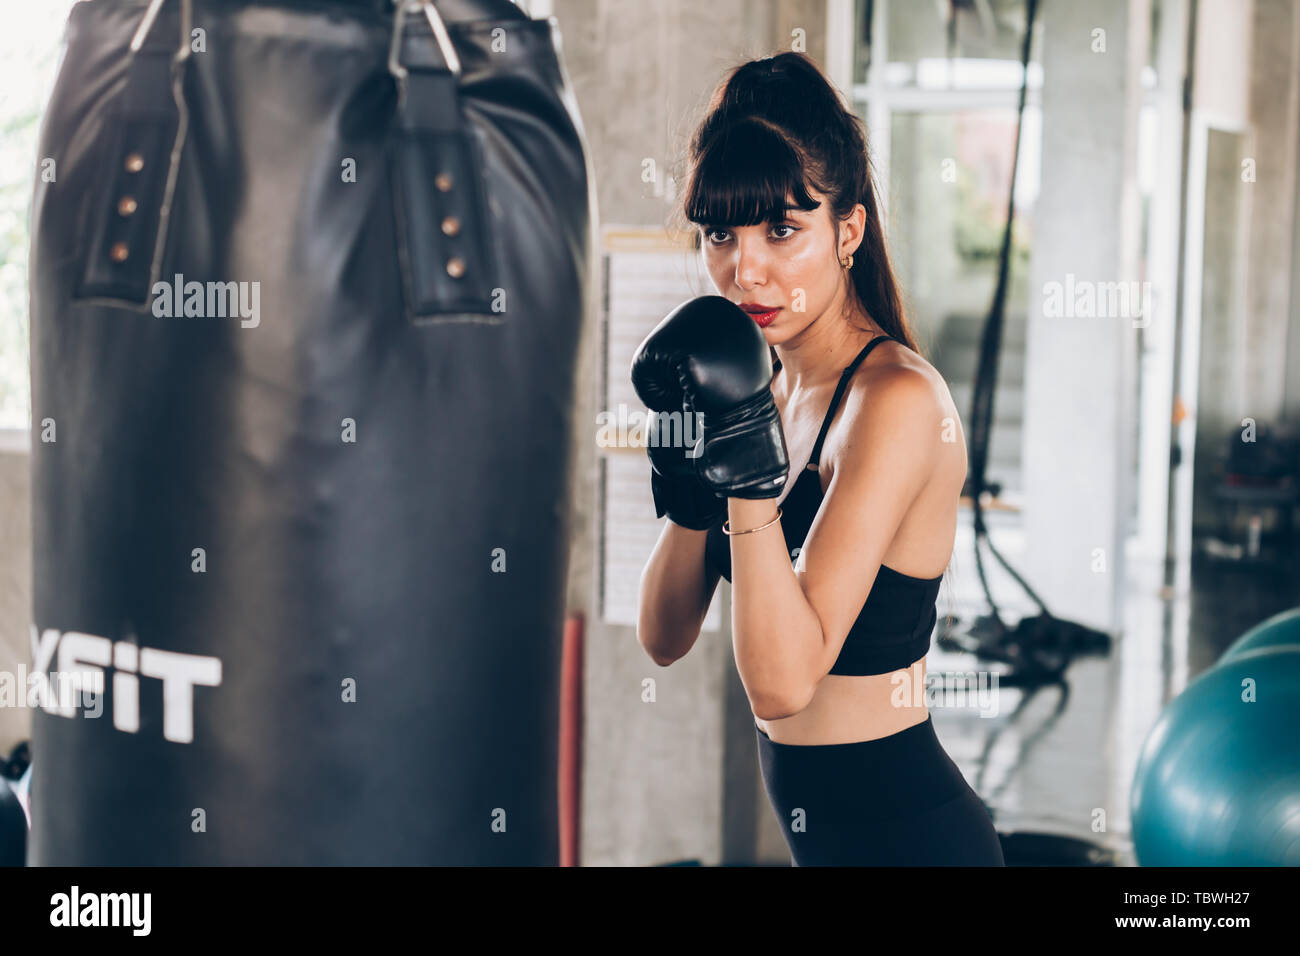 Slim Hispanic young female in sportswear punching boxing bag during training in modern gym - Stock Image